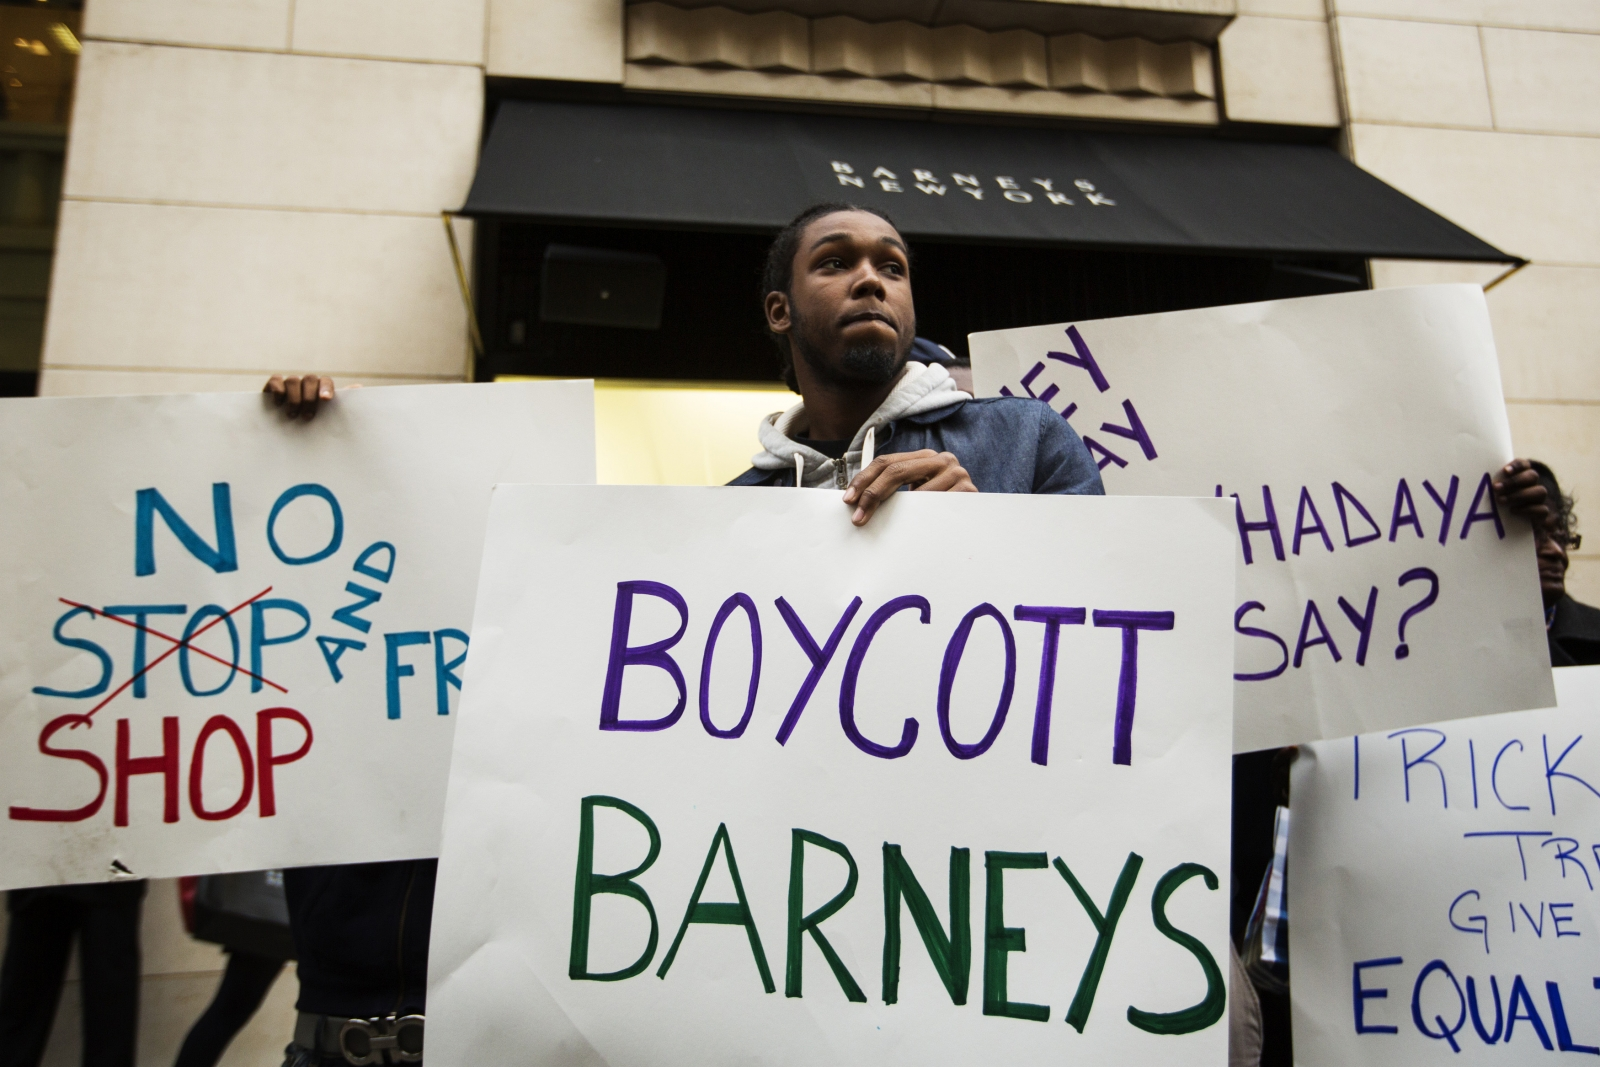 Barneys protest against racial profiling